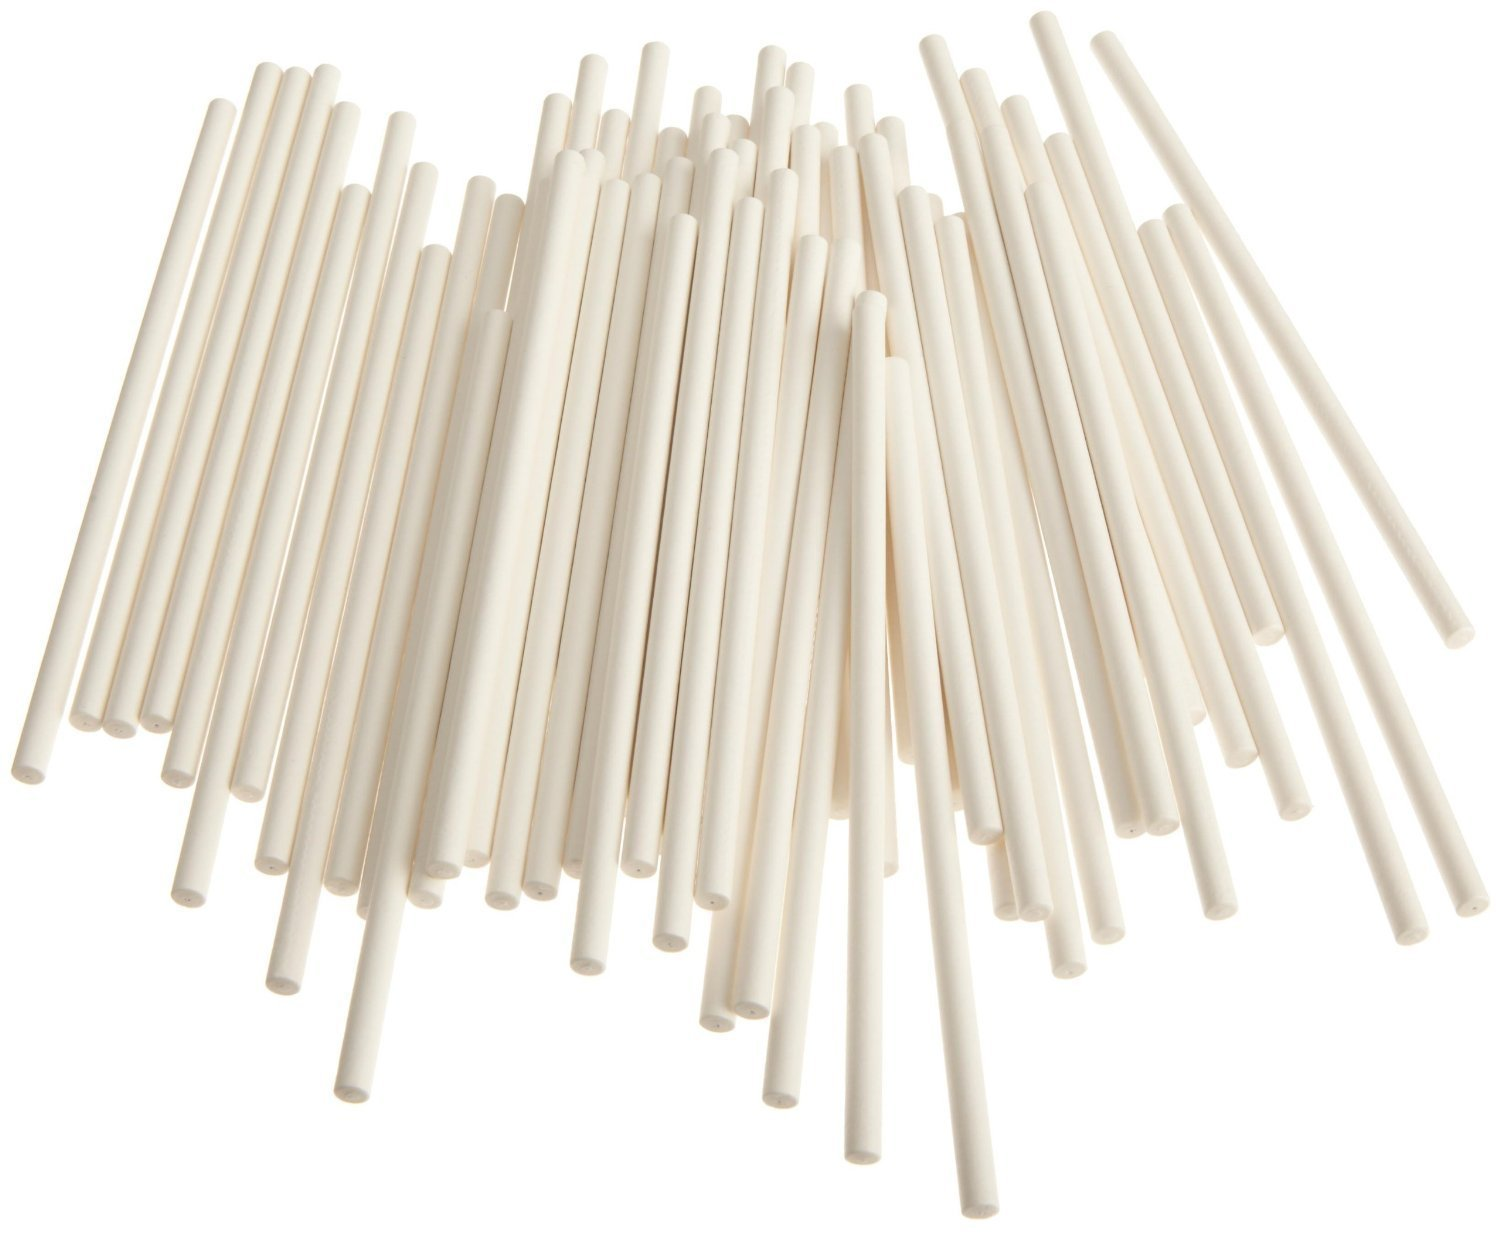 Oasis Supply 1000 Count Sucker Sticks, 6-Inch 3-Pack by Oasis Supply (Image #1)